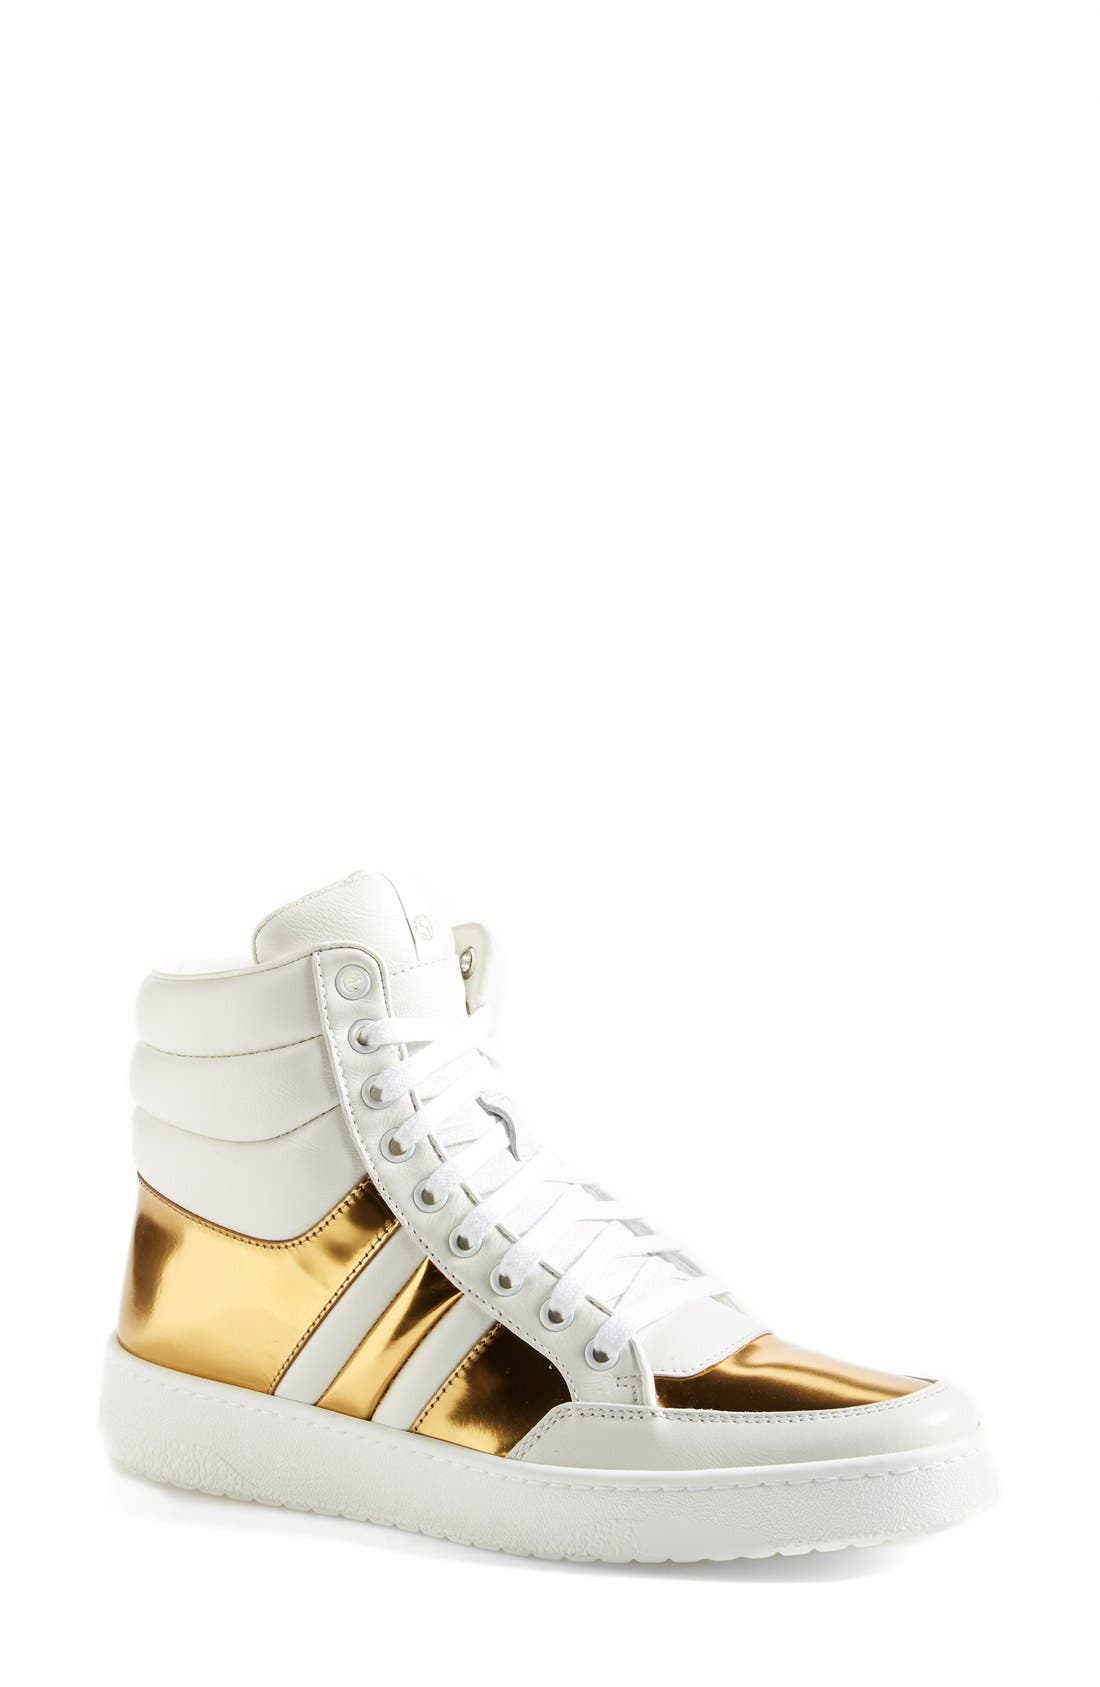 Alternate Image 1 Selected - Gucci 'Ronnie' High Top Sneaker (Women)